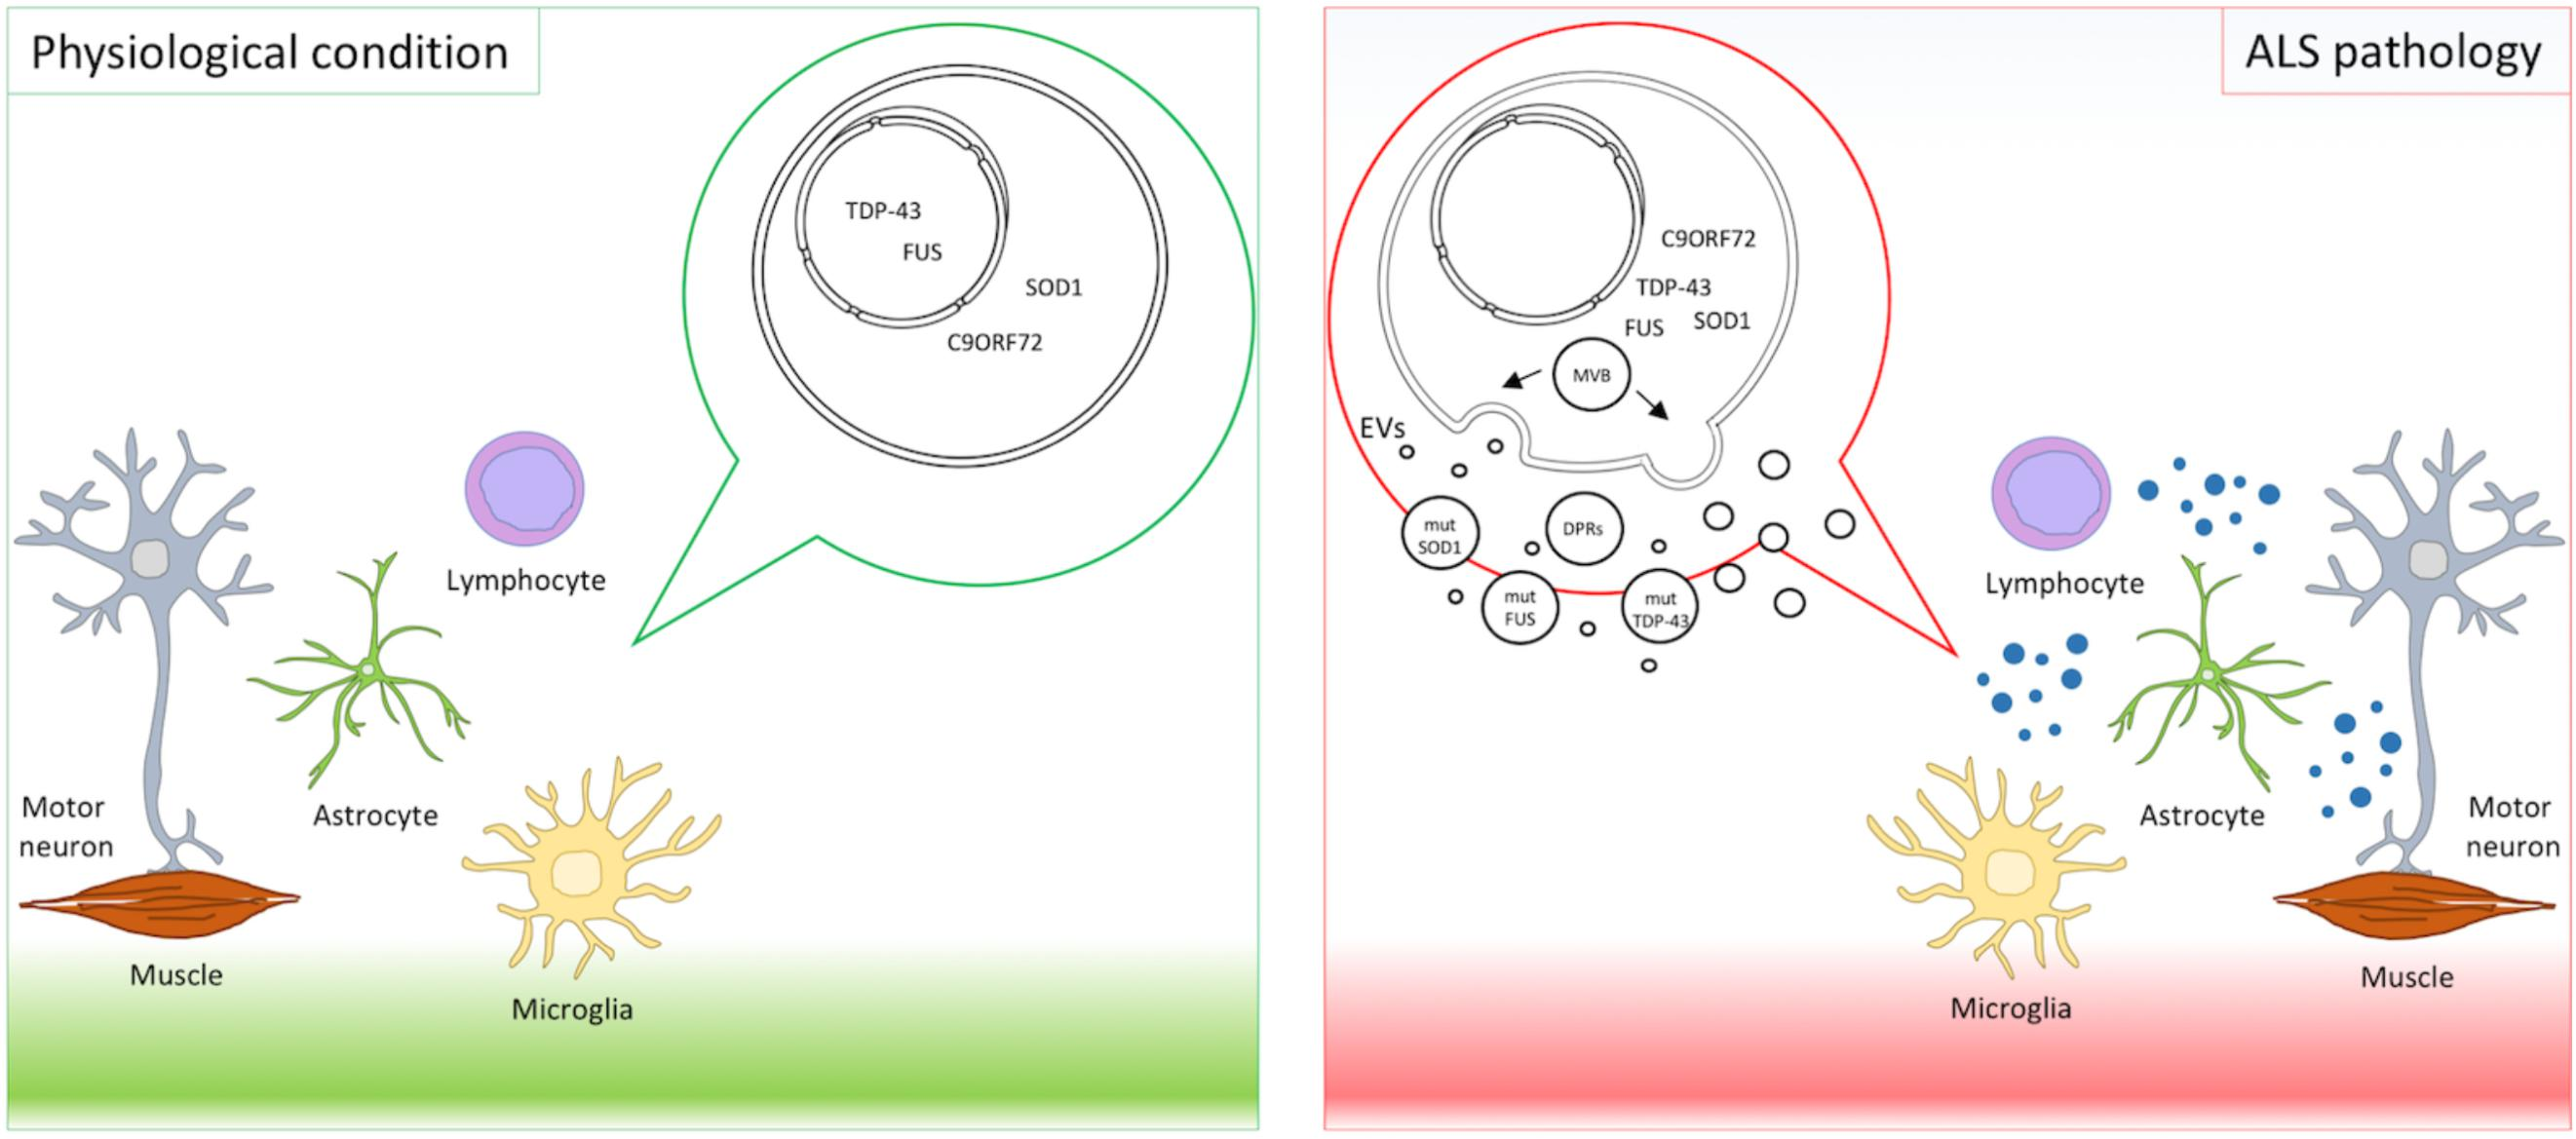 Frontiers role of extracellular vesicles in amyotrophic lateral frontiersin ccuart Image collections